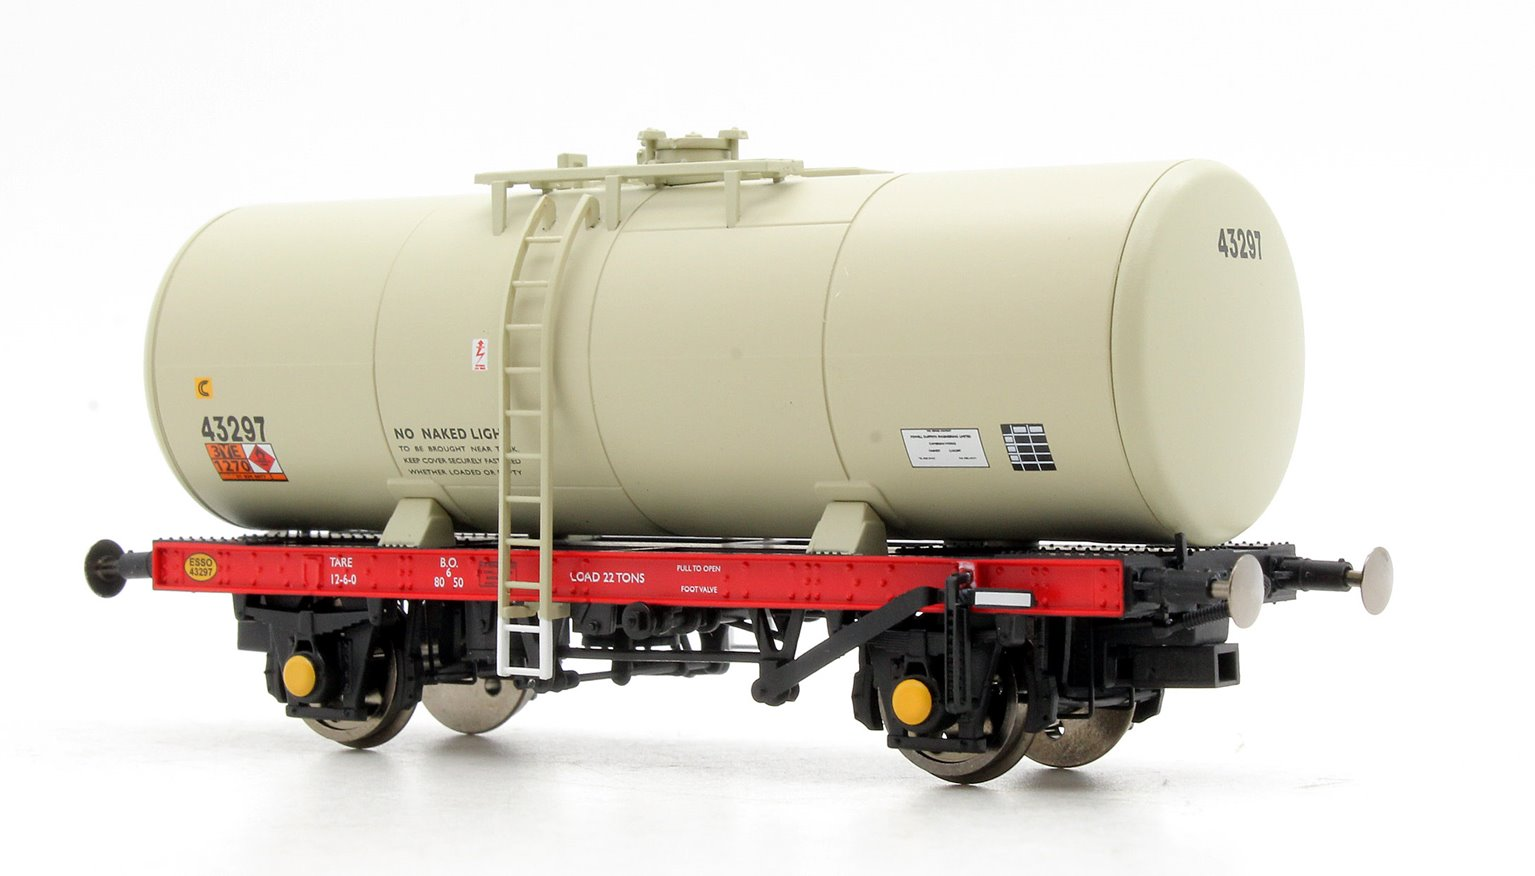 A Tank ESSO 43297 (grey - 1980's era with Hazchem symbols)